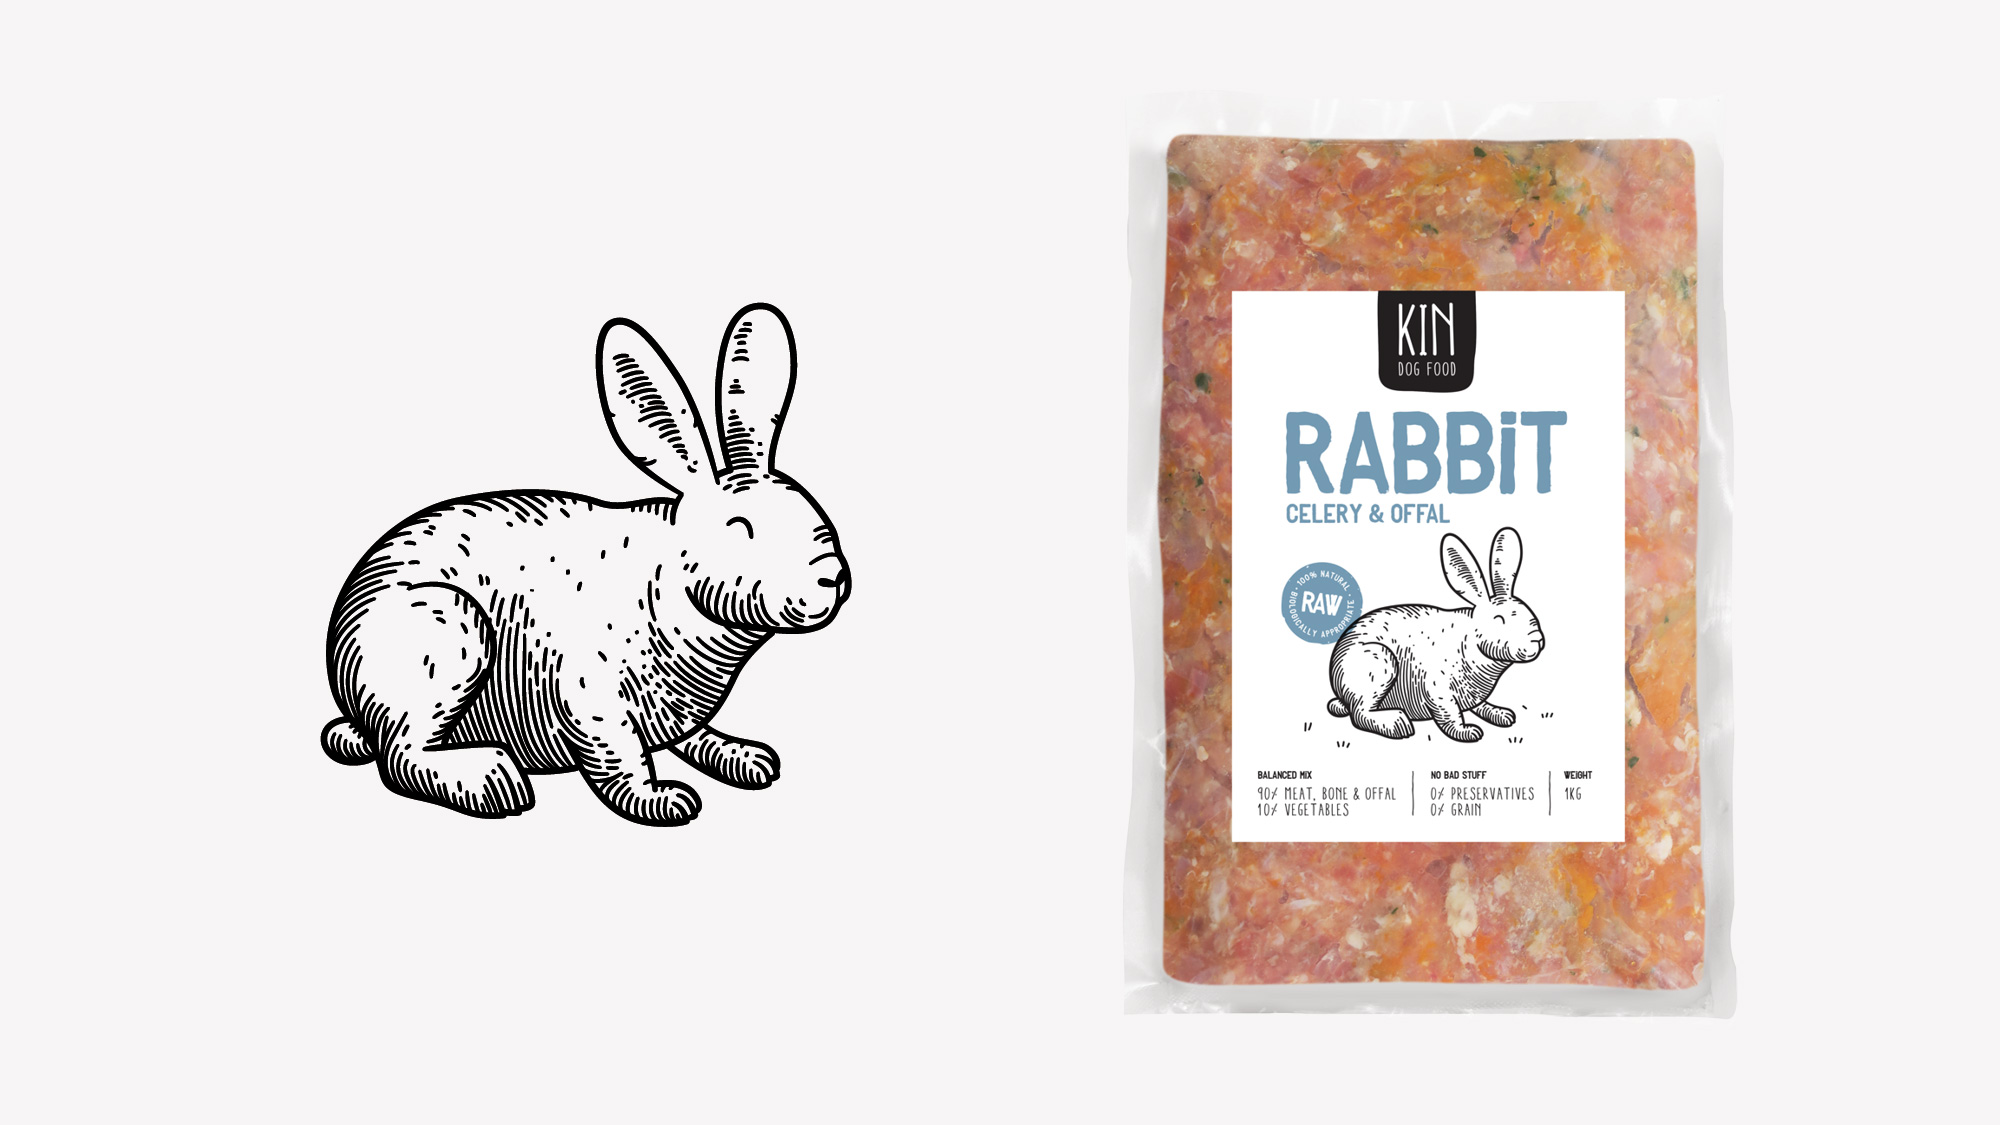 Dog food packaging - Rabbit